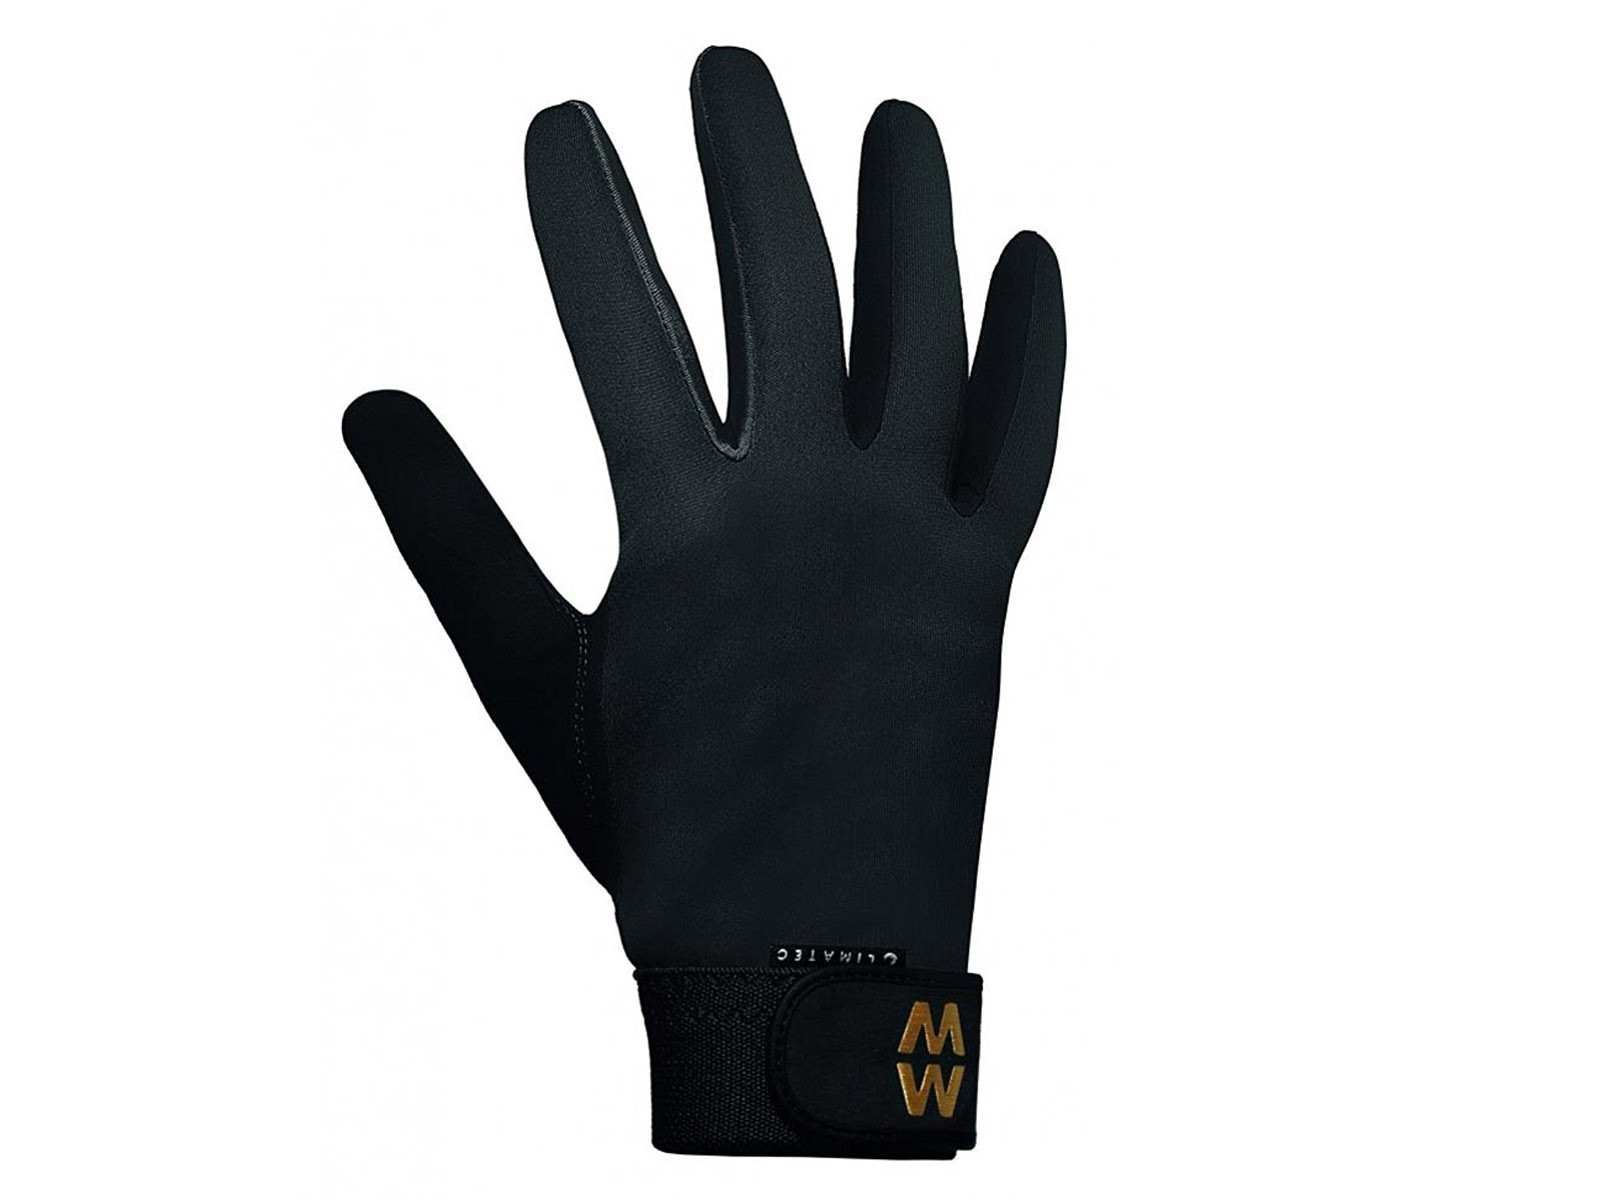 Macwet Gloves - Long Black